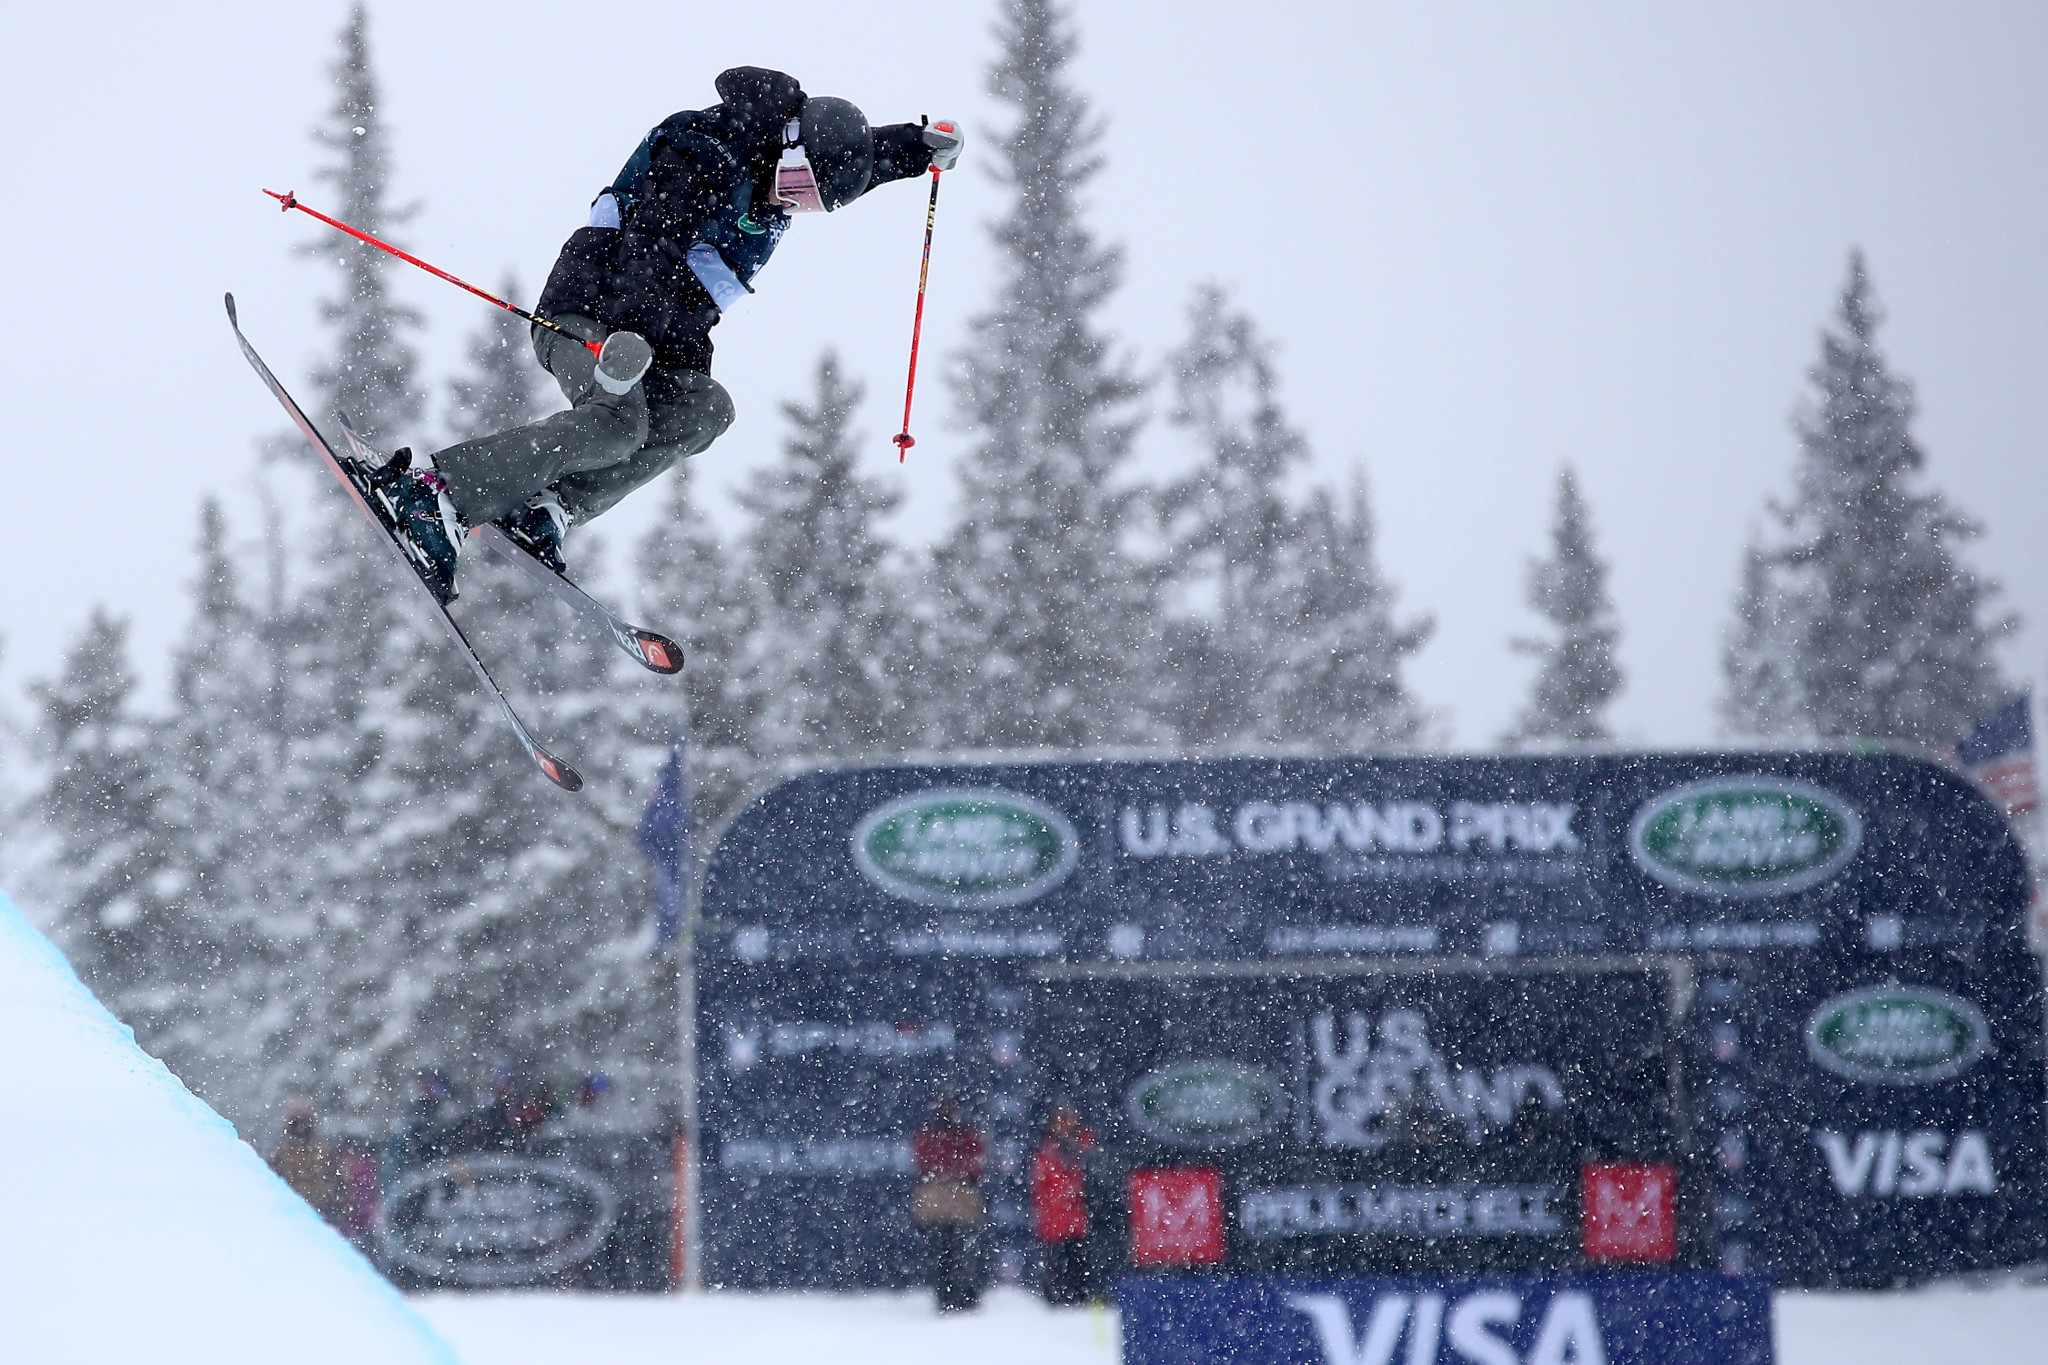 Career-first win for teen Atkin at FIS Freestyle Skiing Halfpipe World Cup in Copper Mountain